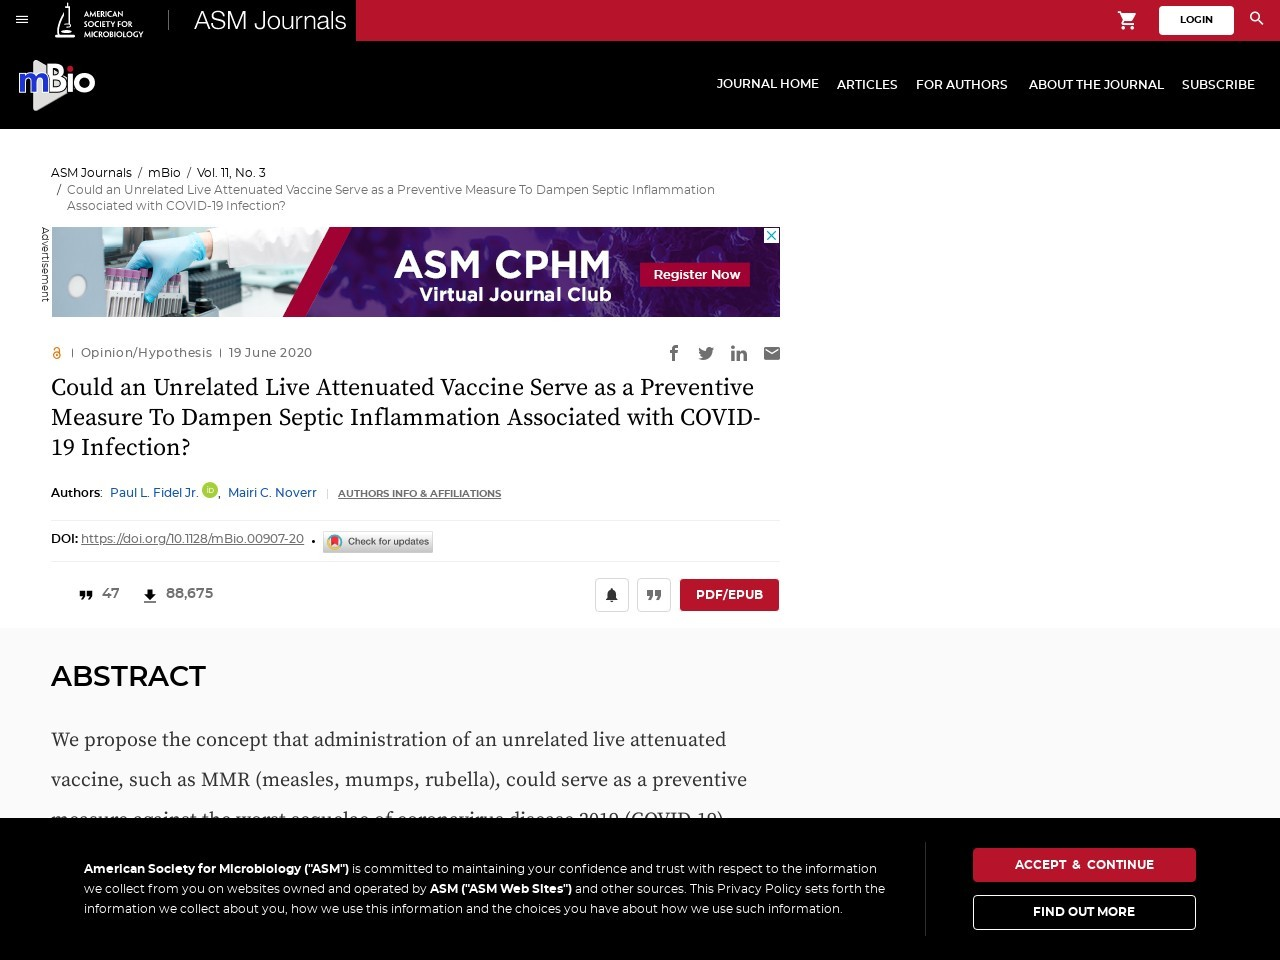 Could an Unrelated Live Attenuated Vaccine Serve as a Preventive Measure To Dampen Septic Inflammation Associated with COVID-19 Infection?